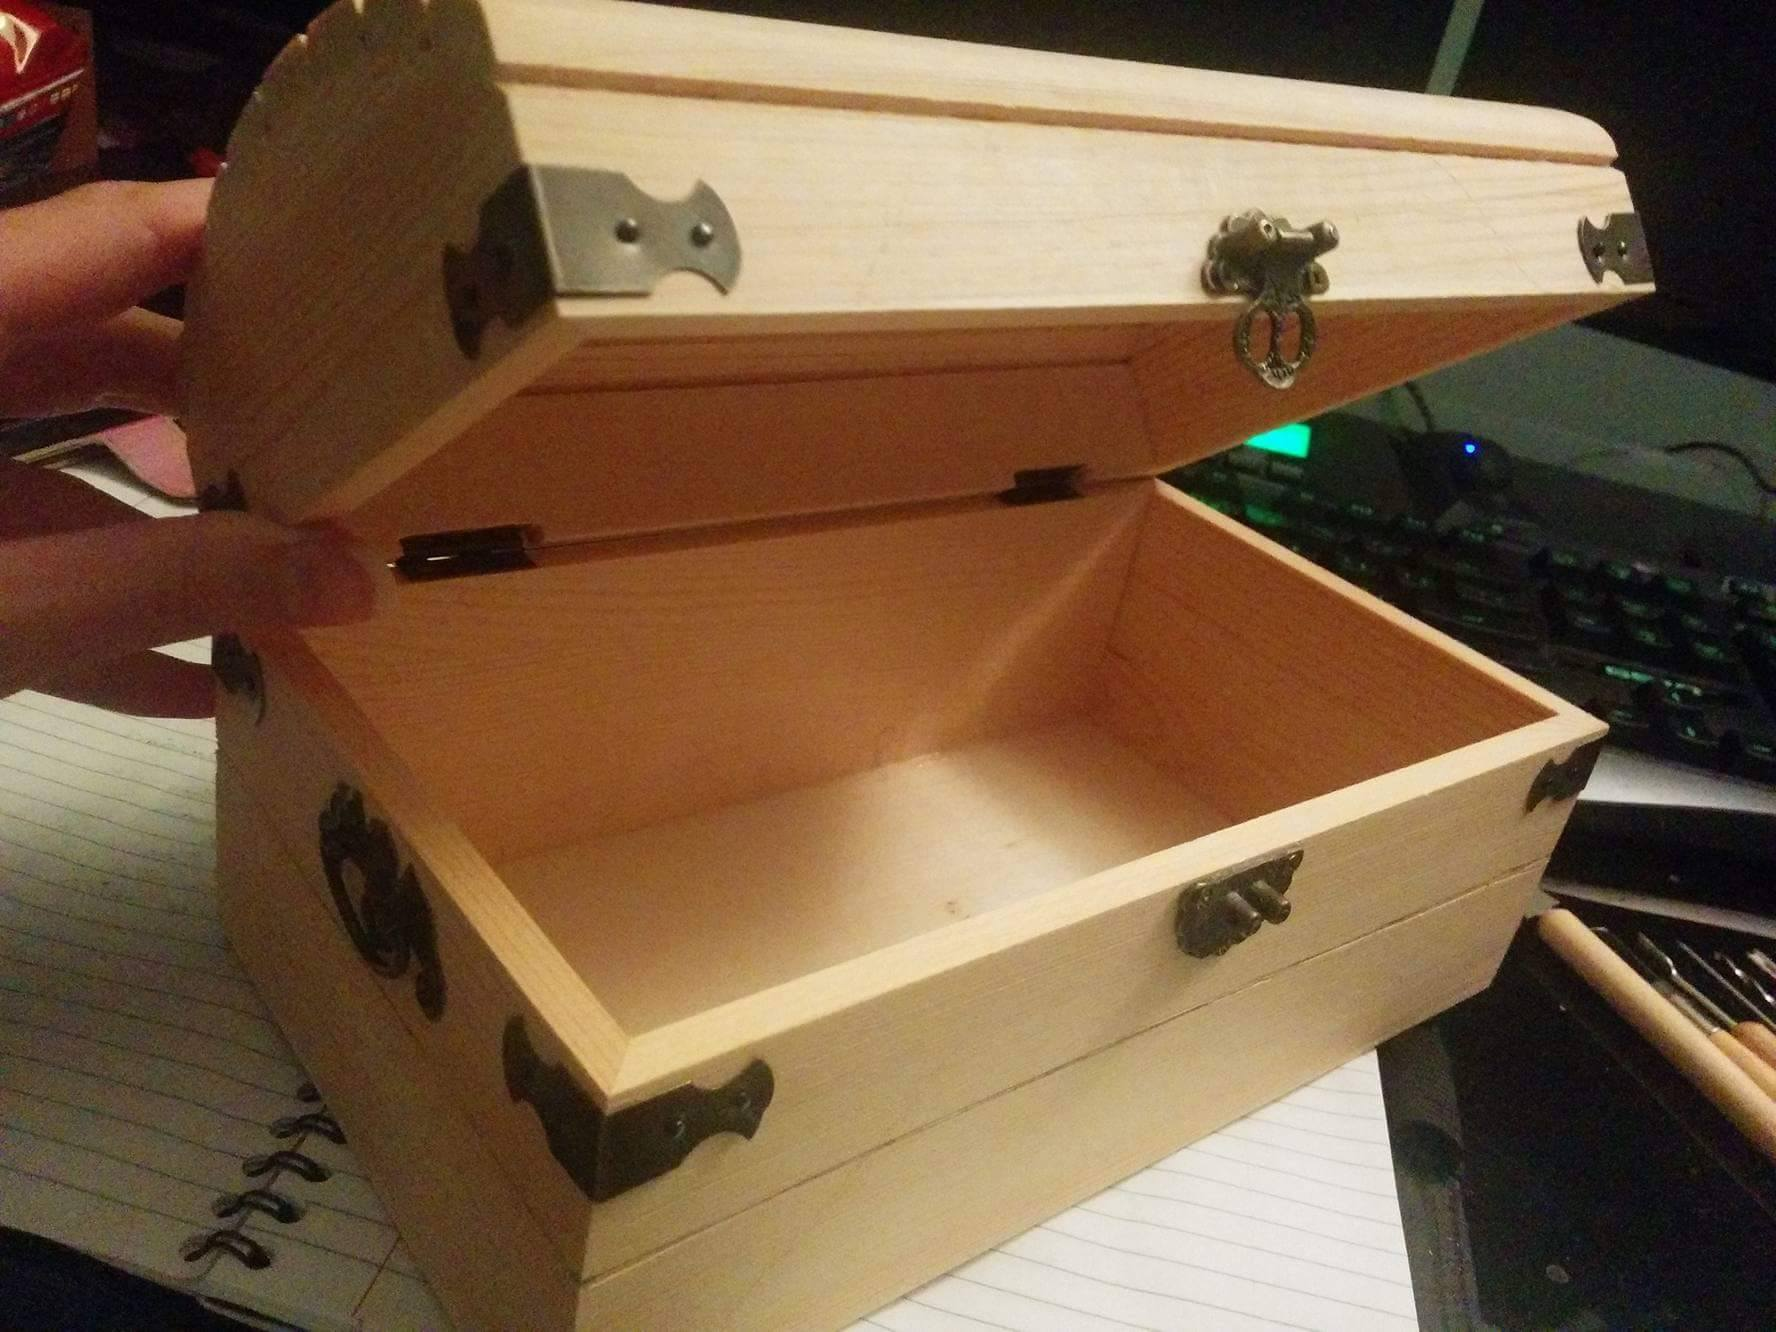 This is my starting point. A plain wooden box bought from a craft store. (This particular one is from Micheals).